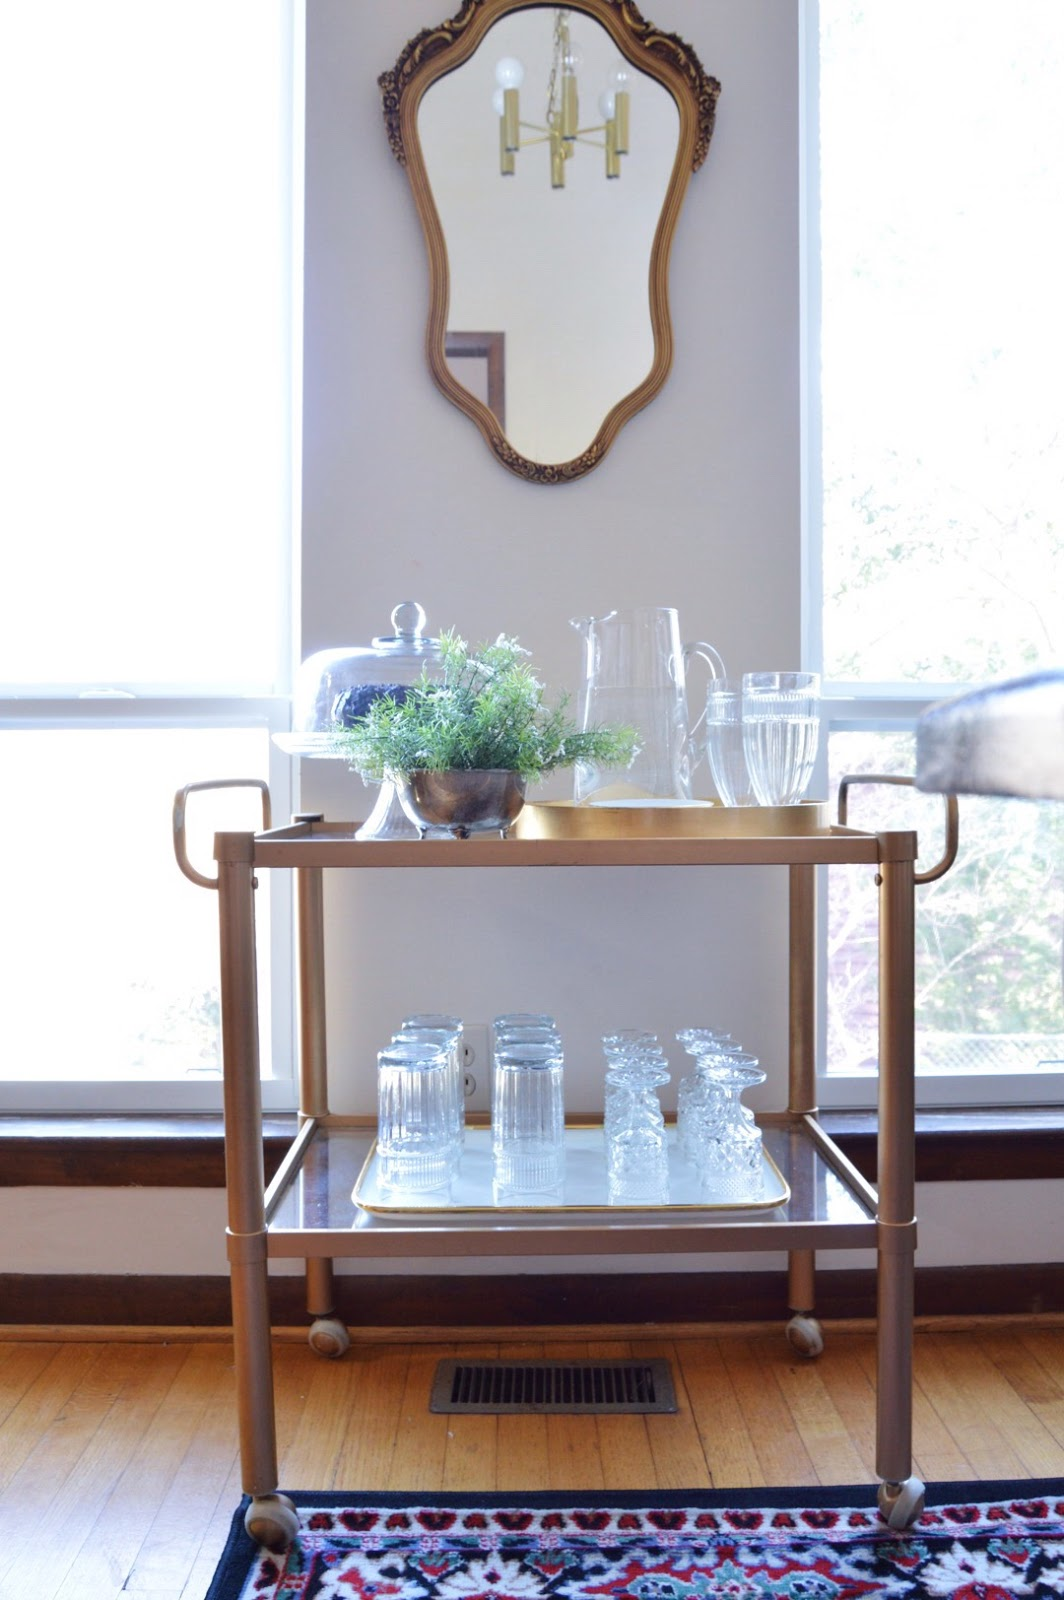 The many different ways to style a bar cart, bar cart, entertaining with bar carts, non alcoholic bar cart styling, bar cart inspirations